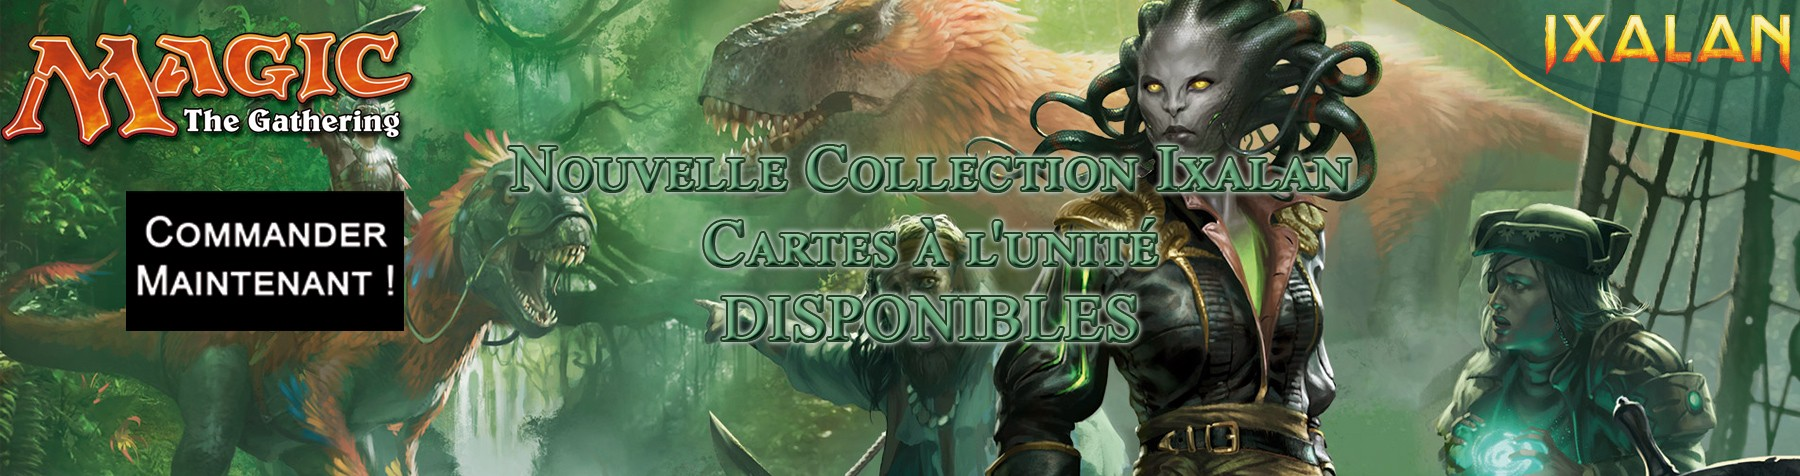 Nouvelle collection Ixalan Magic The Gathering